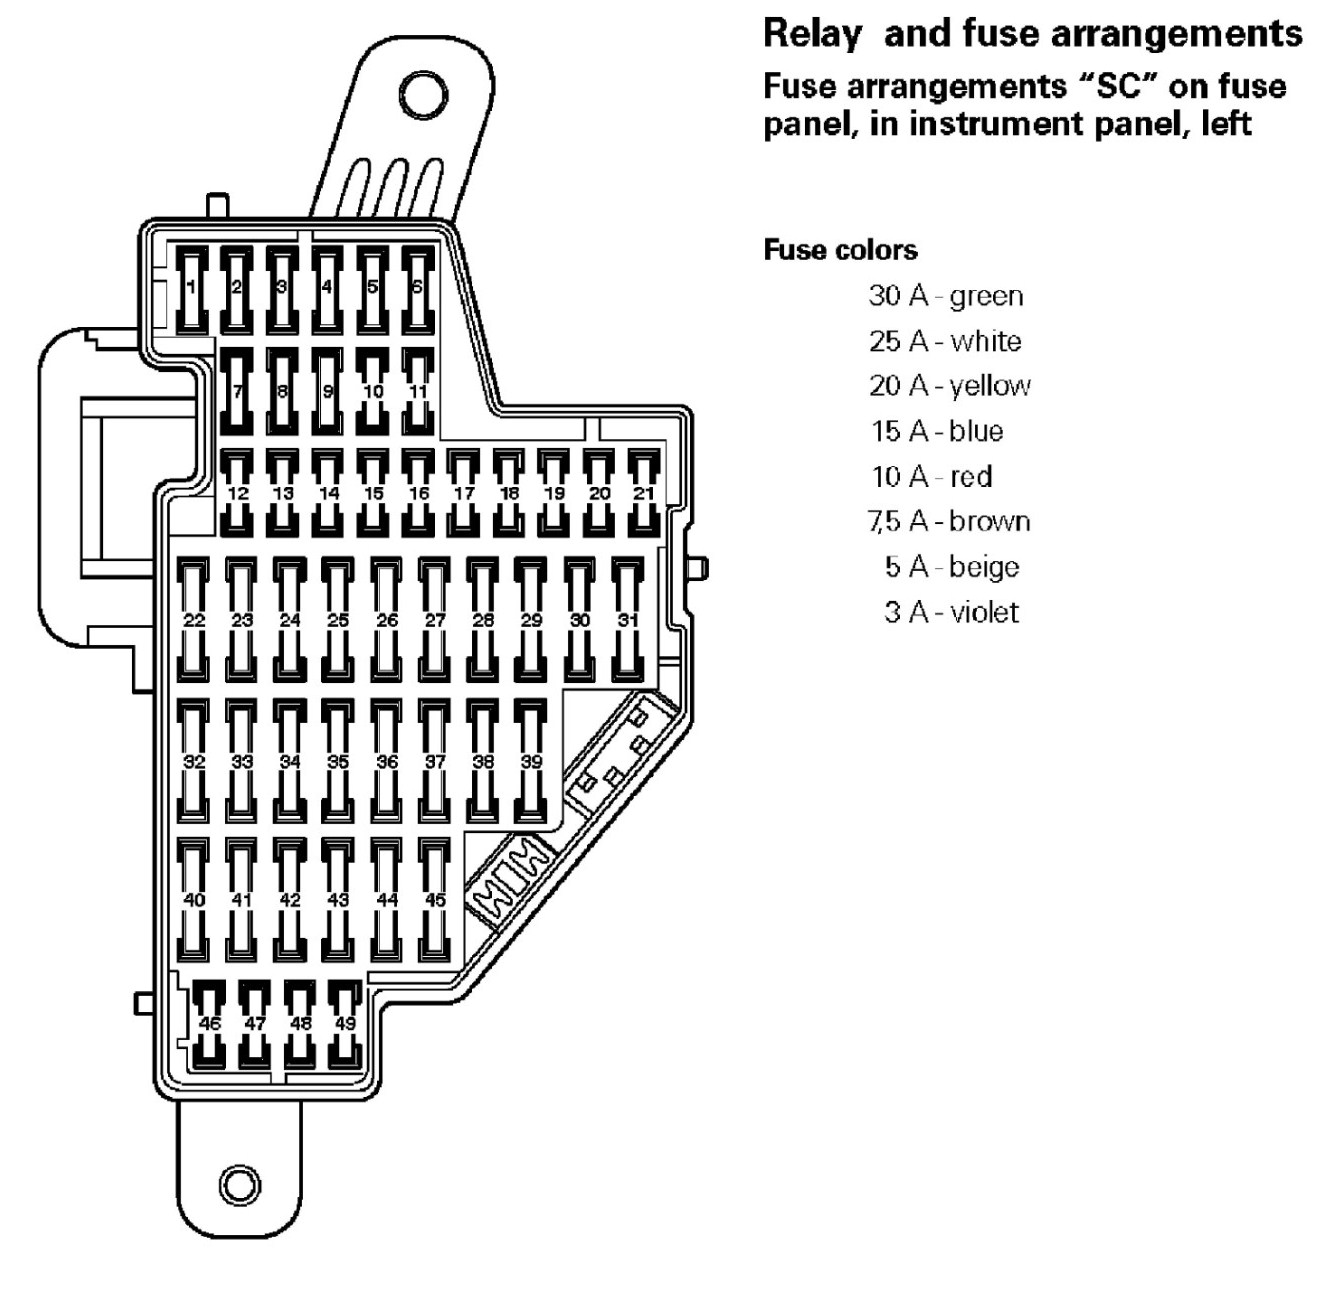 jetta fuse box 0735450020101   28 wiring diagram images